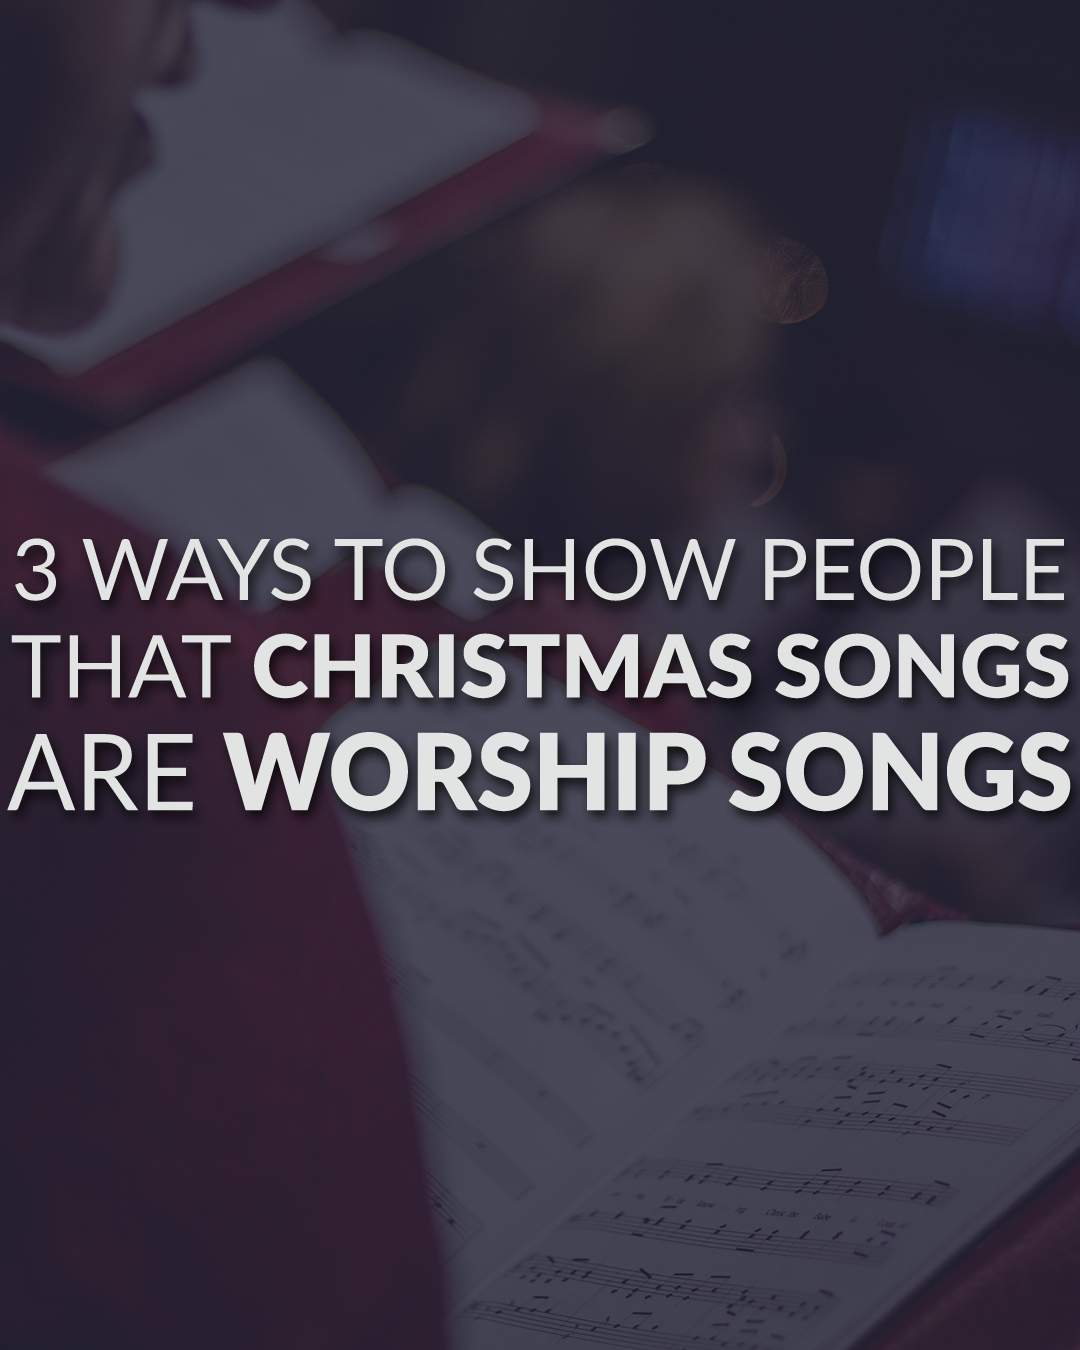 3 Ways To Show People That Christmas Songs Are Worship Songs